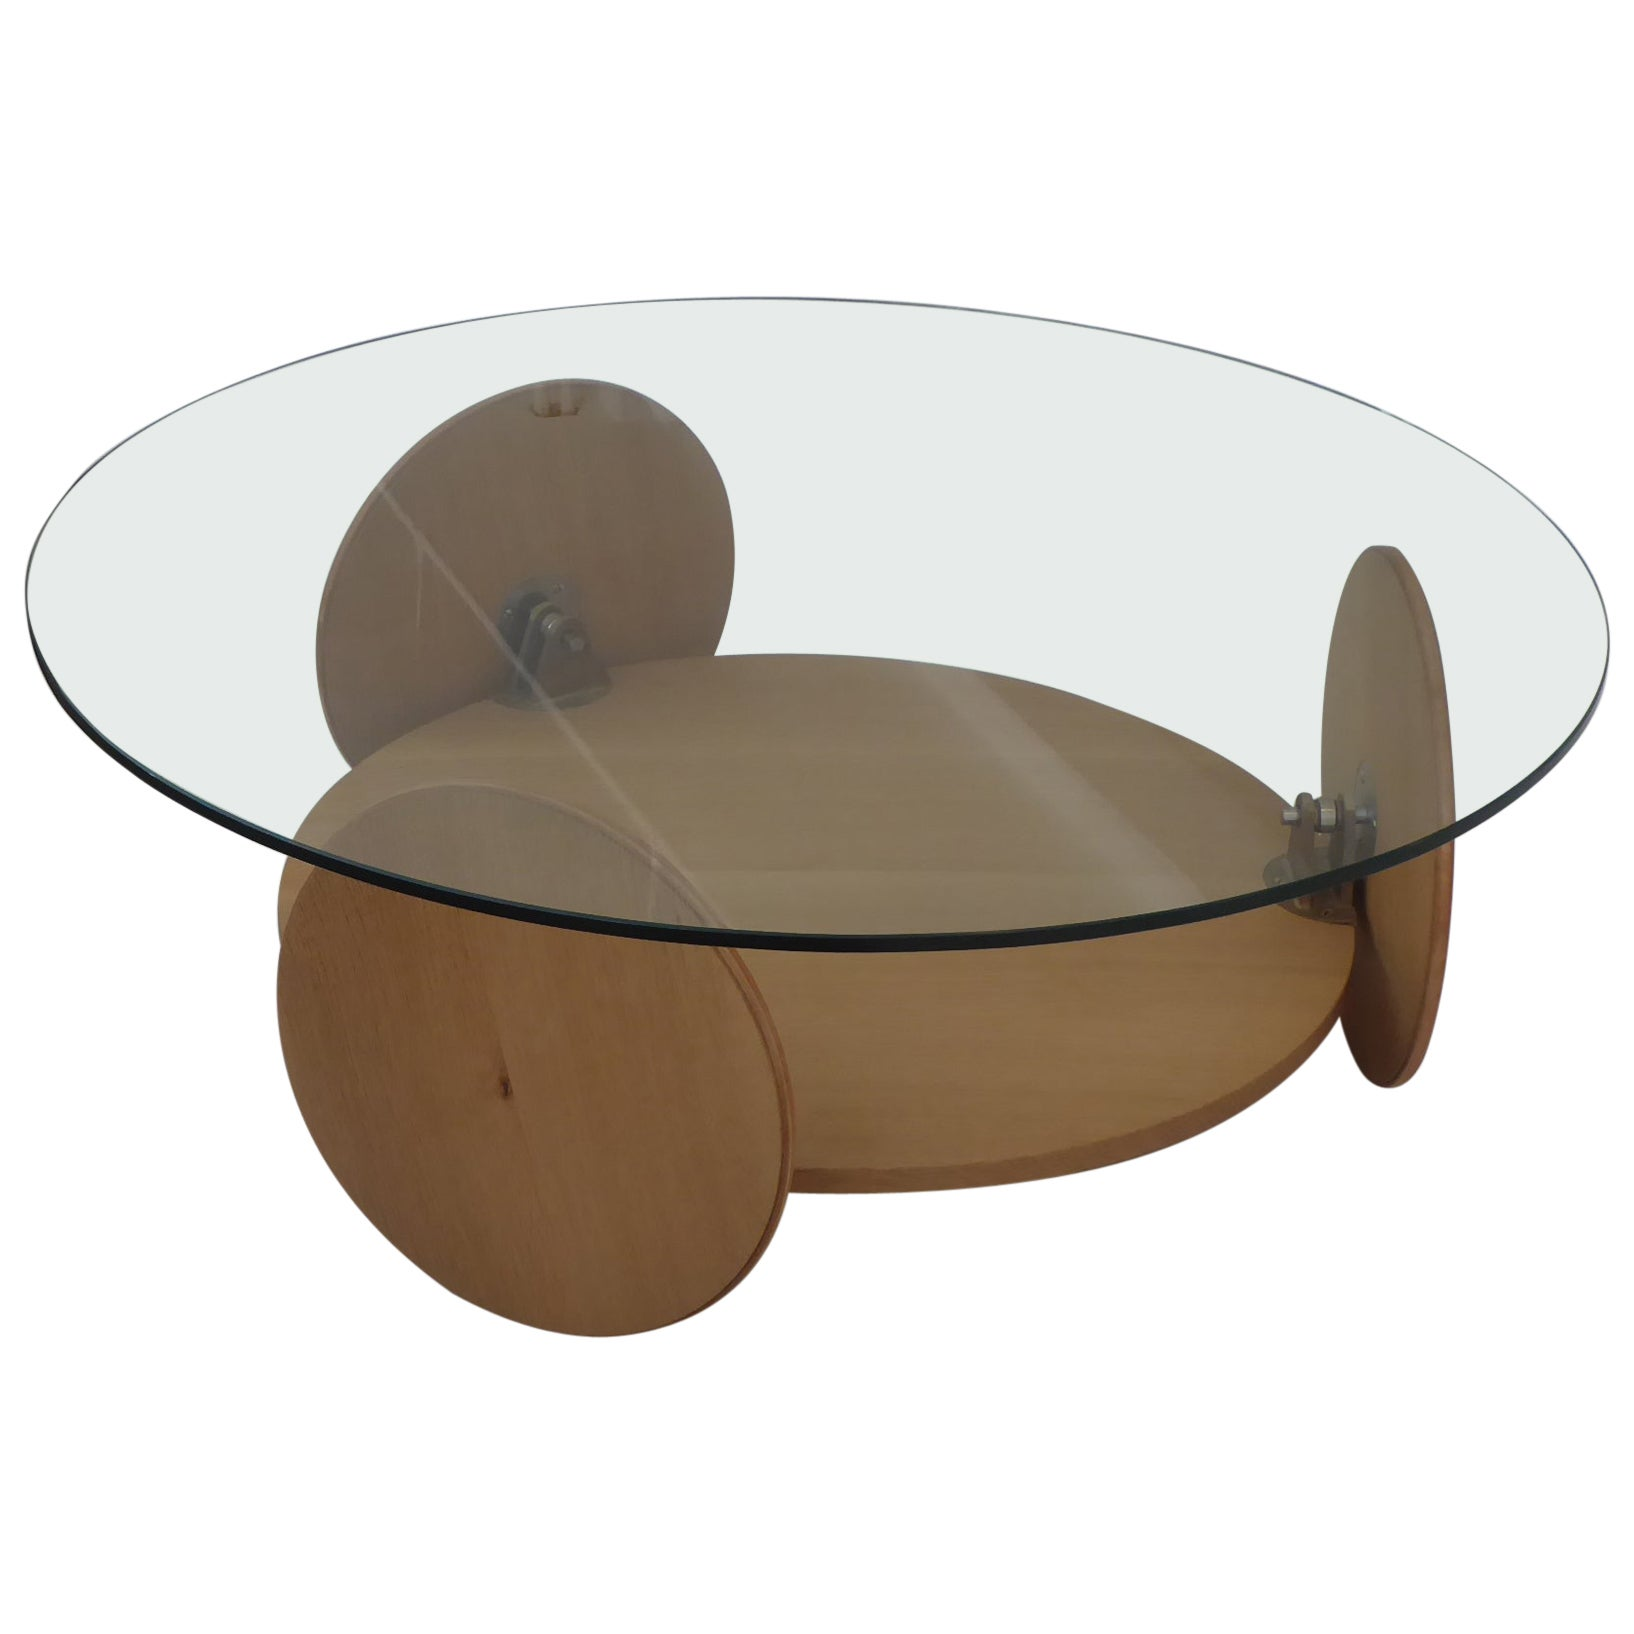 Round Wood and Glass Coffee Table with Shelf